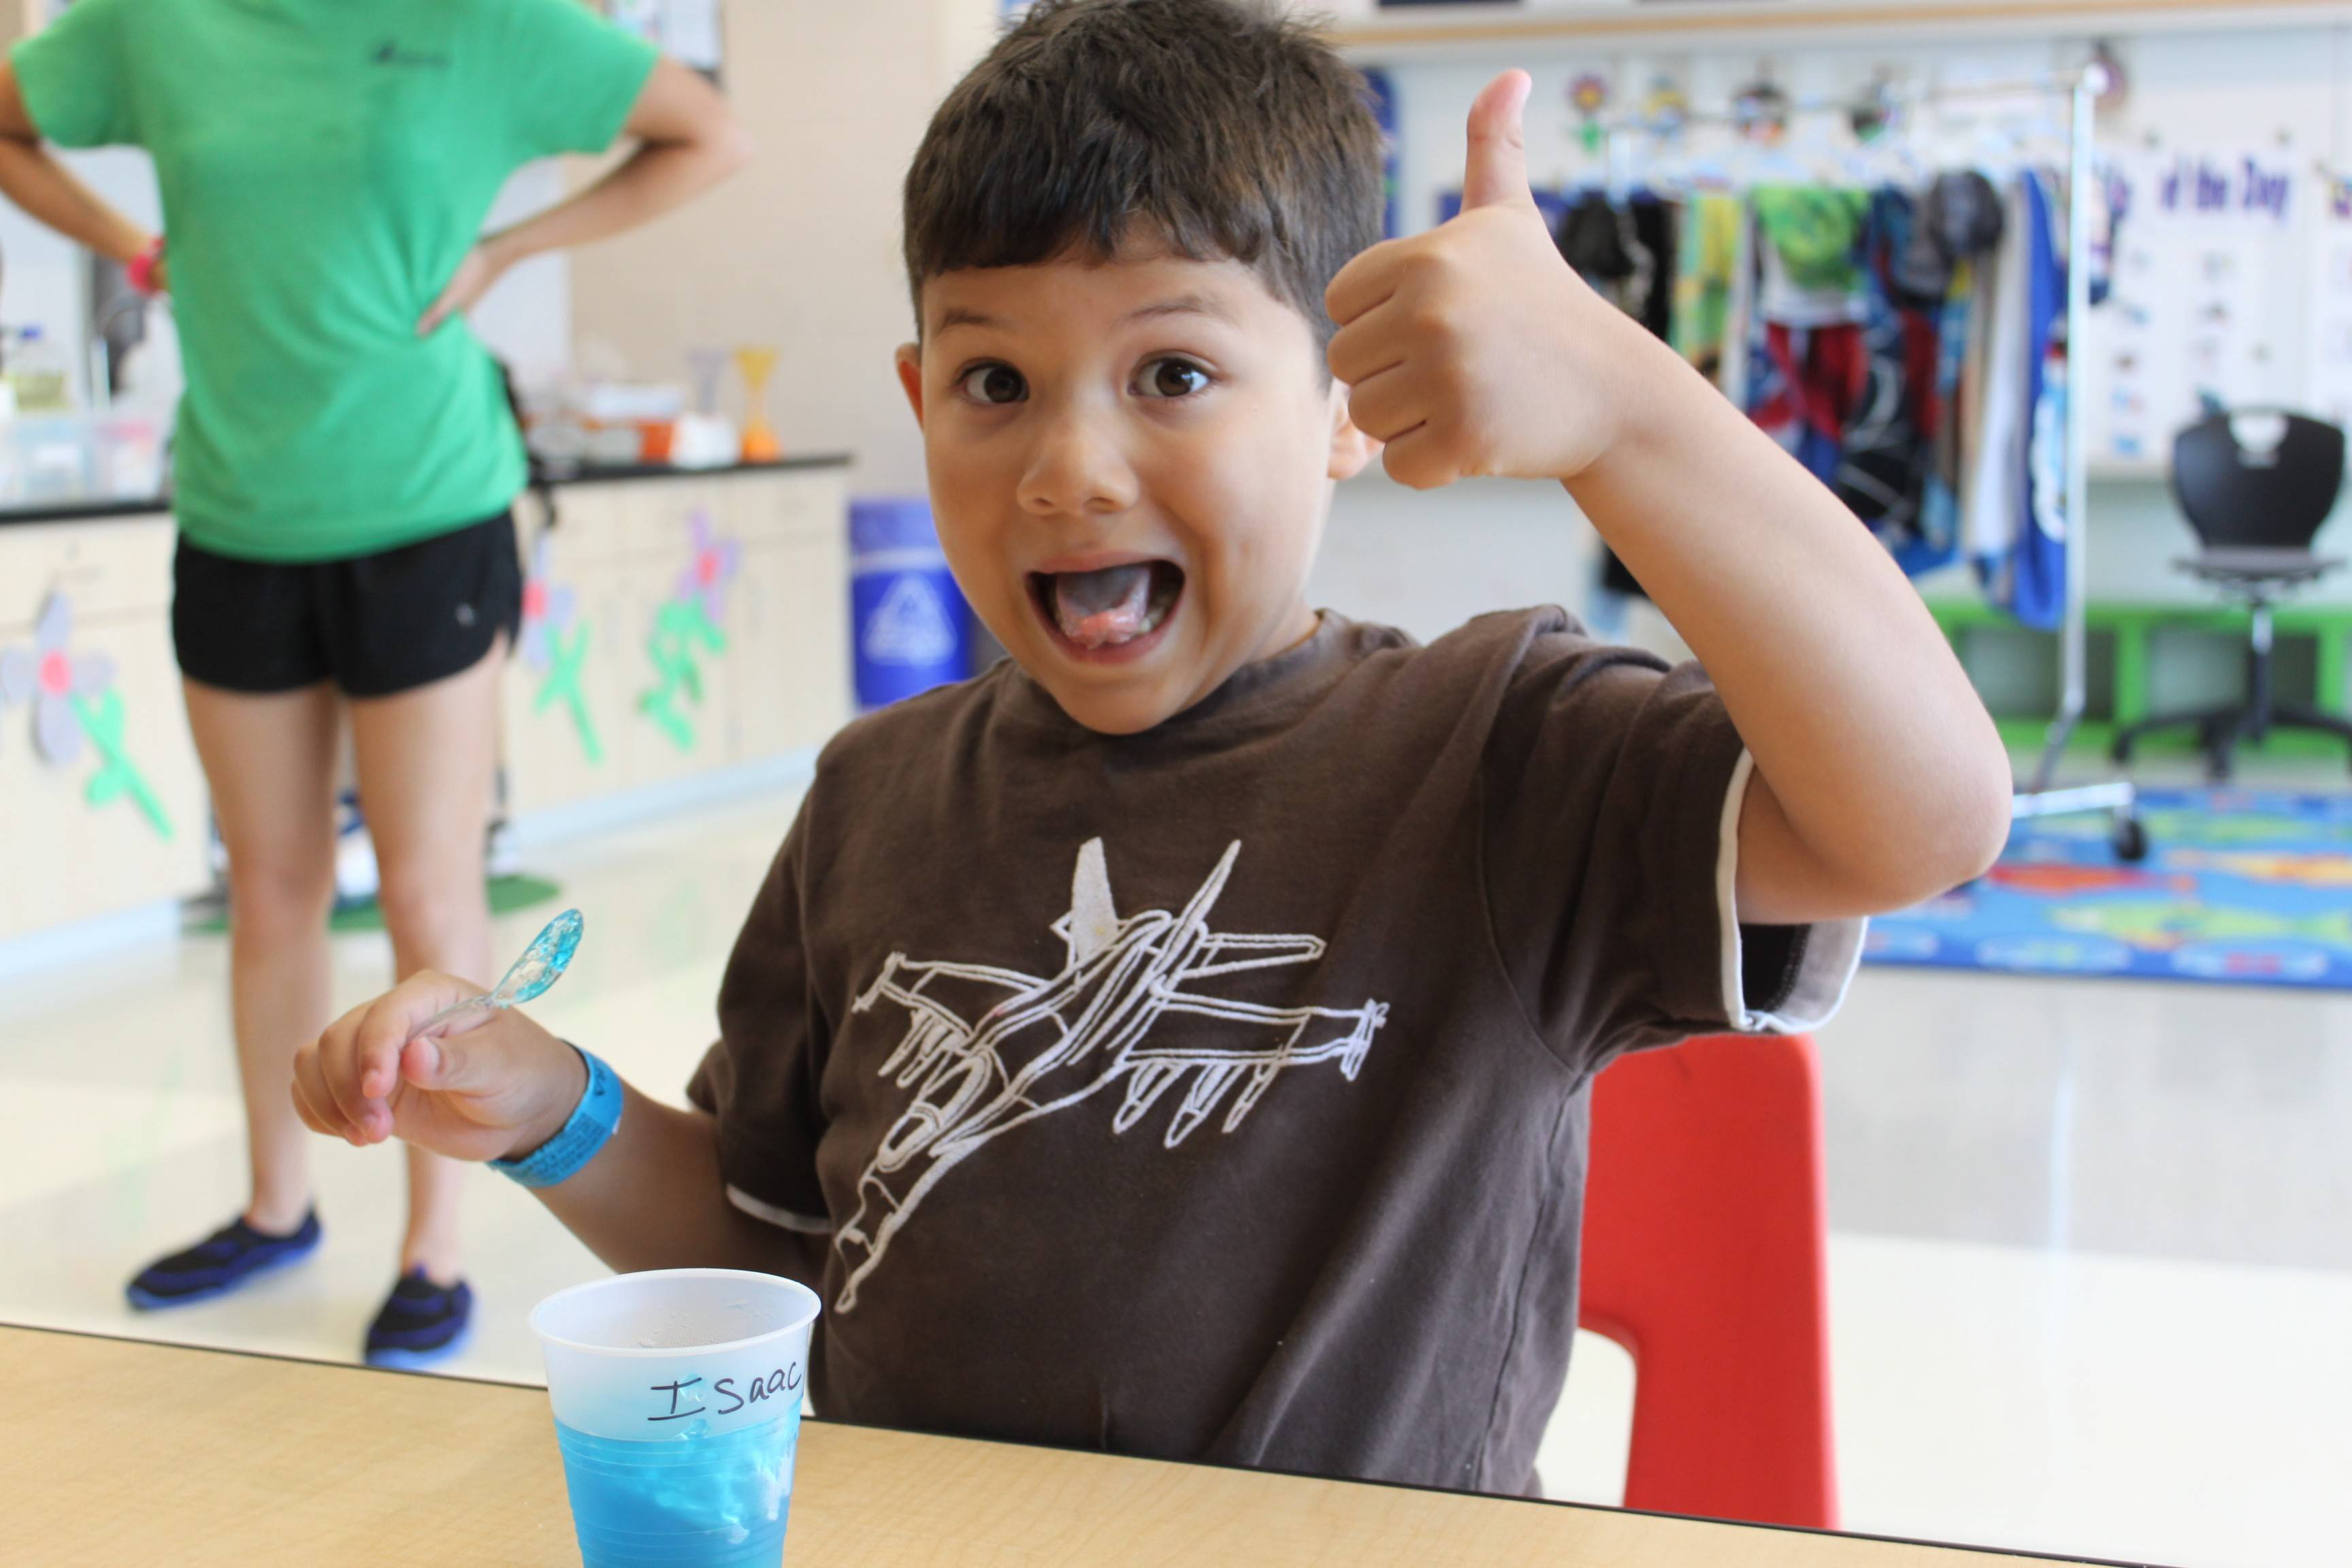 Issac enjoys a Jell-O snack at NEDSRA's Little Explorer summer day camp.